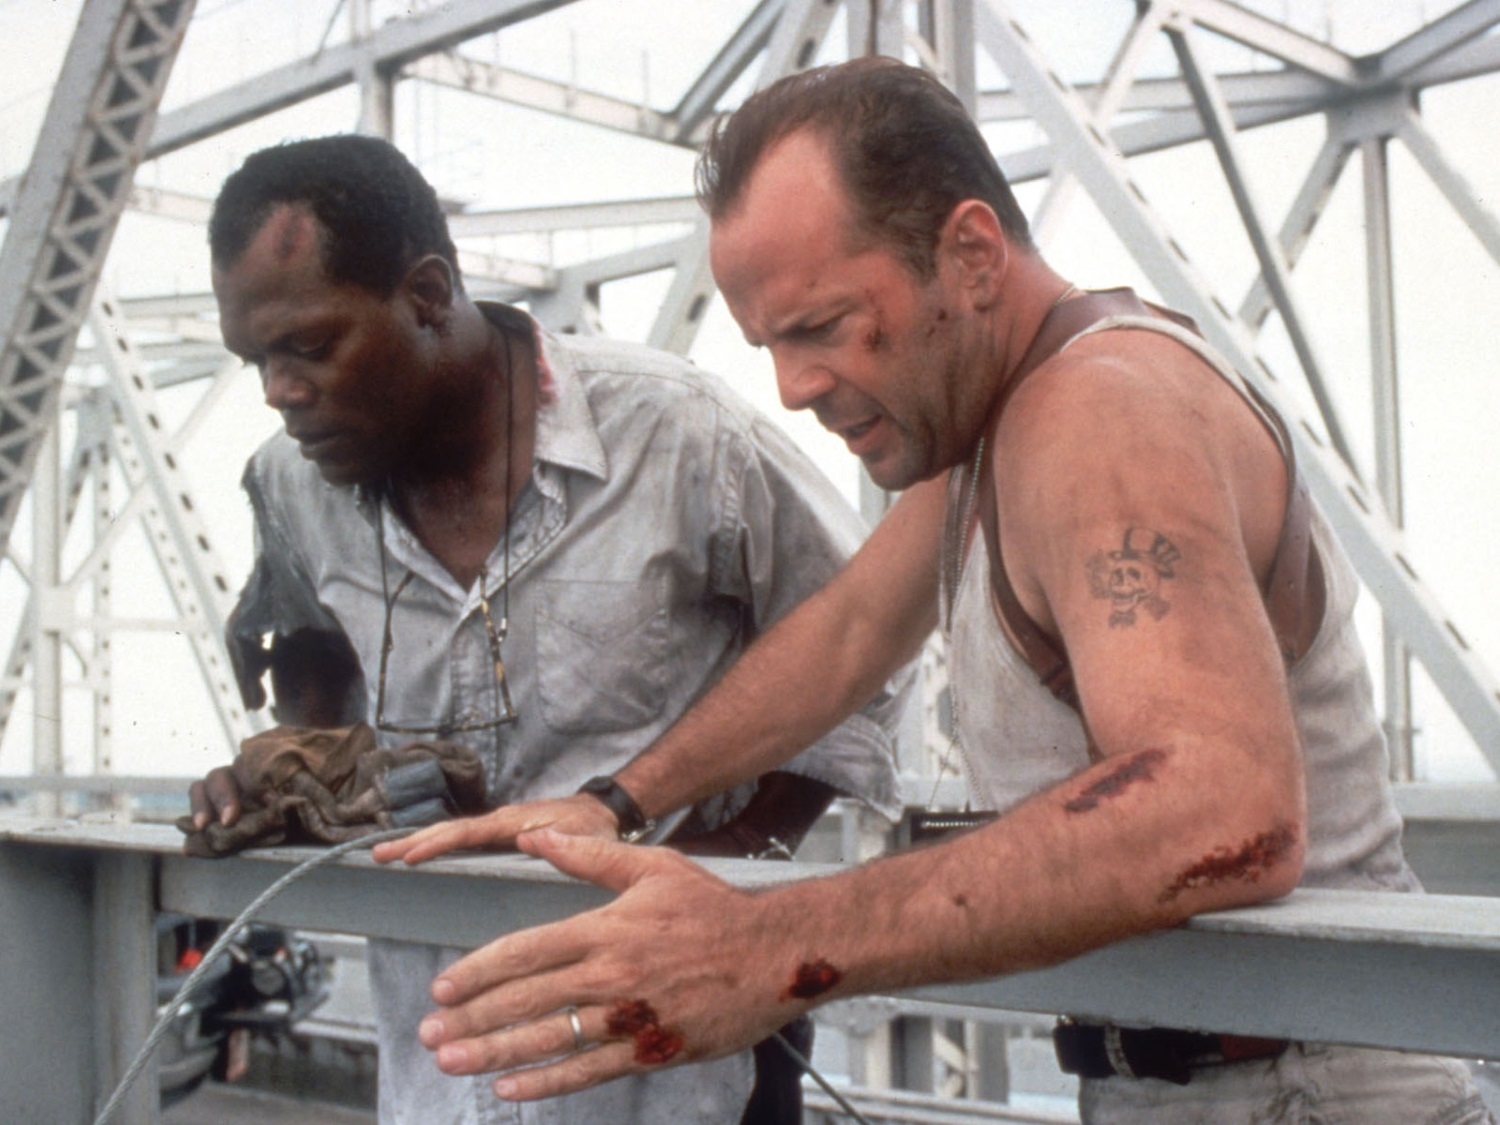 die hard with a vengeance 1995 171 celebrity gossip and